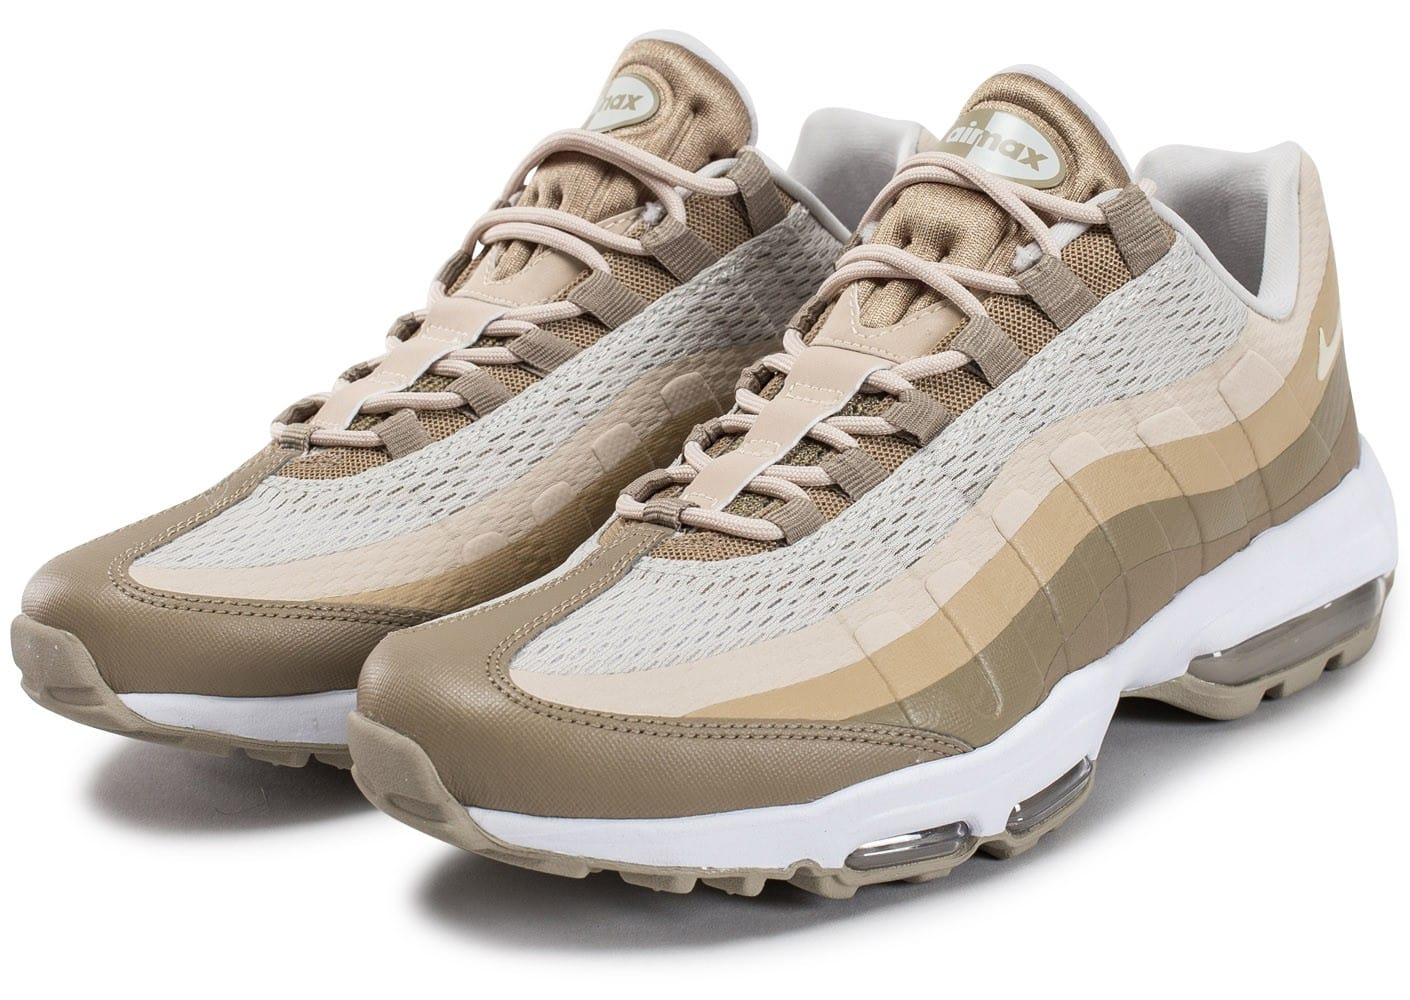 nike air max 95 ultra essential beige chaussures homme chausport. Black Bedroom Furniture Sets. Home Design Ideas